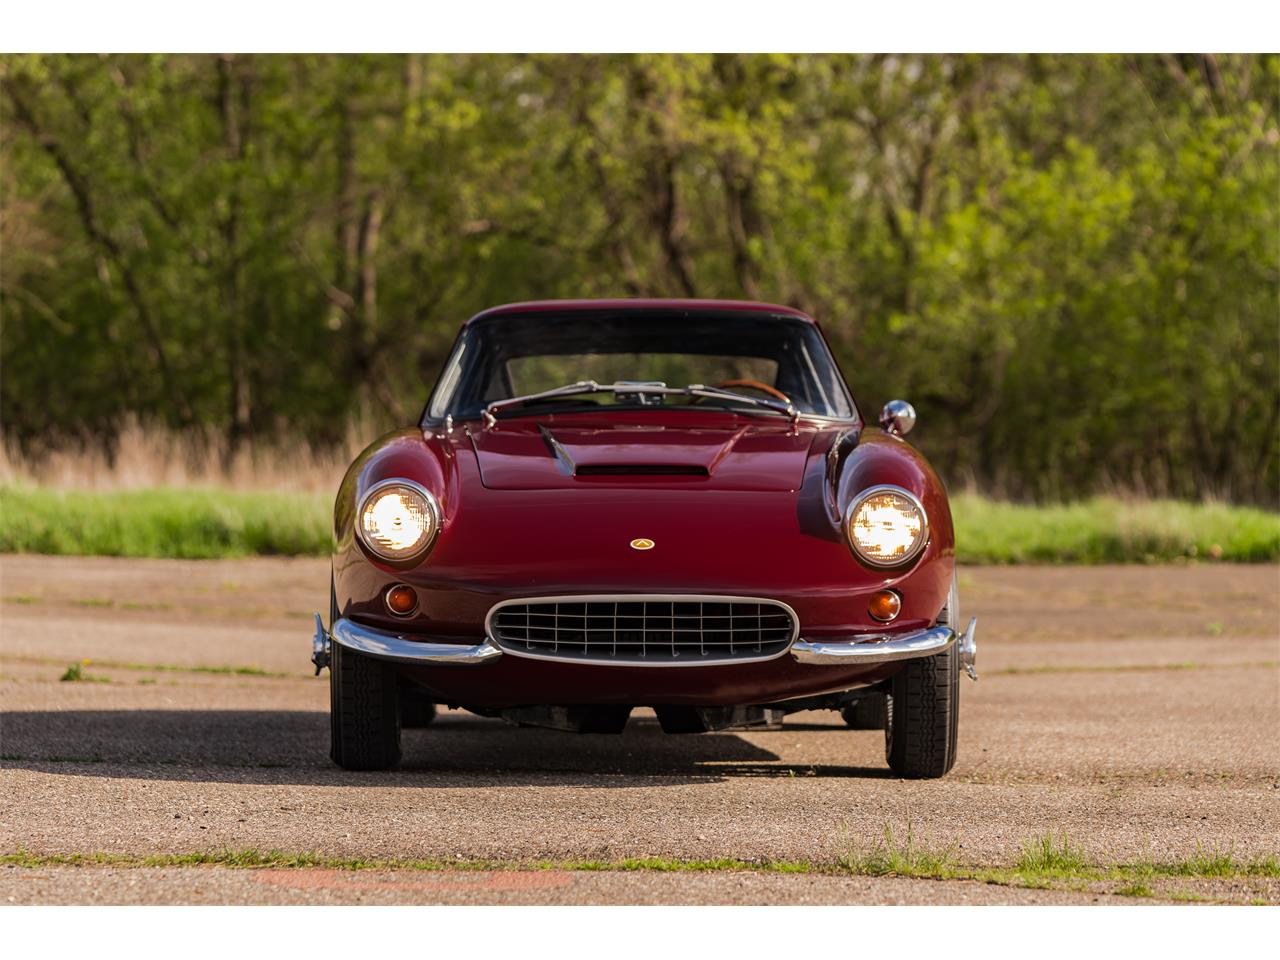 Large Picture of '63 Apollo 3500GT located in Pontiac Michigan - $175,000.00 Offered by LBI Limited - Q5FX